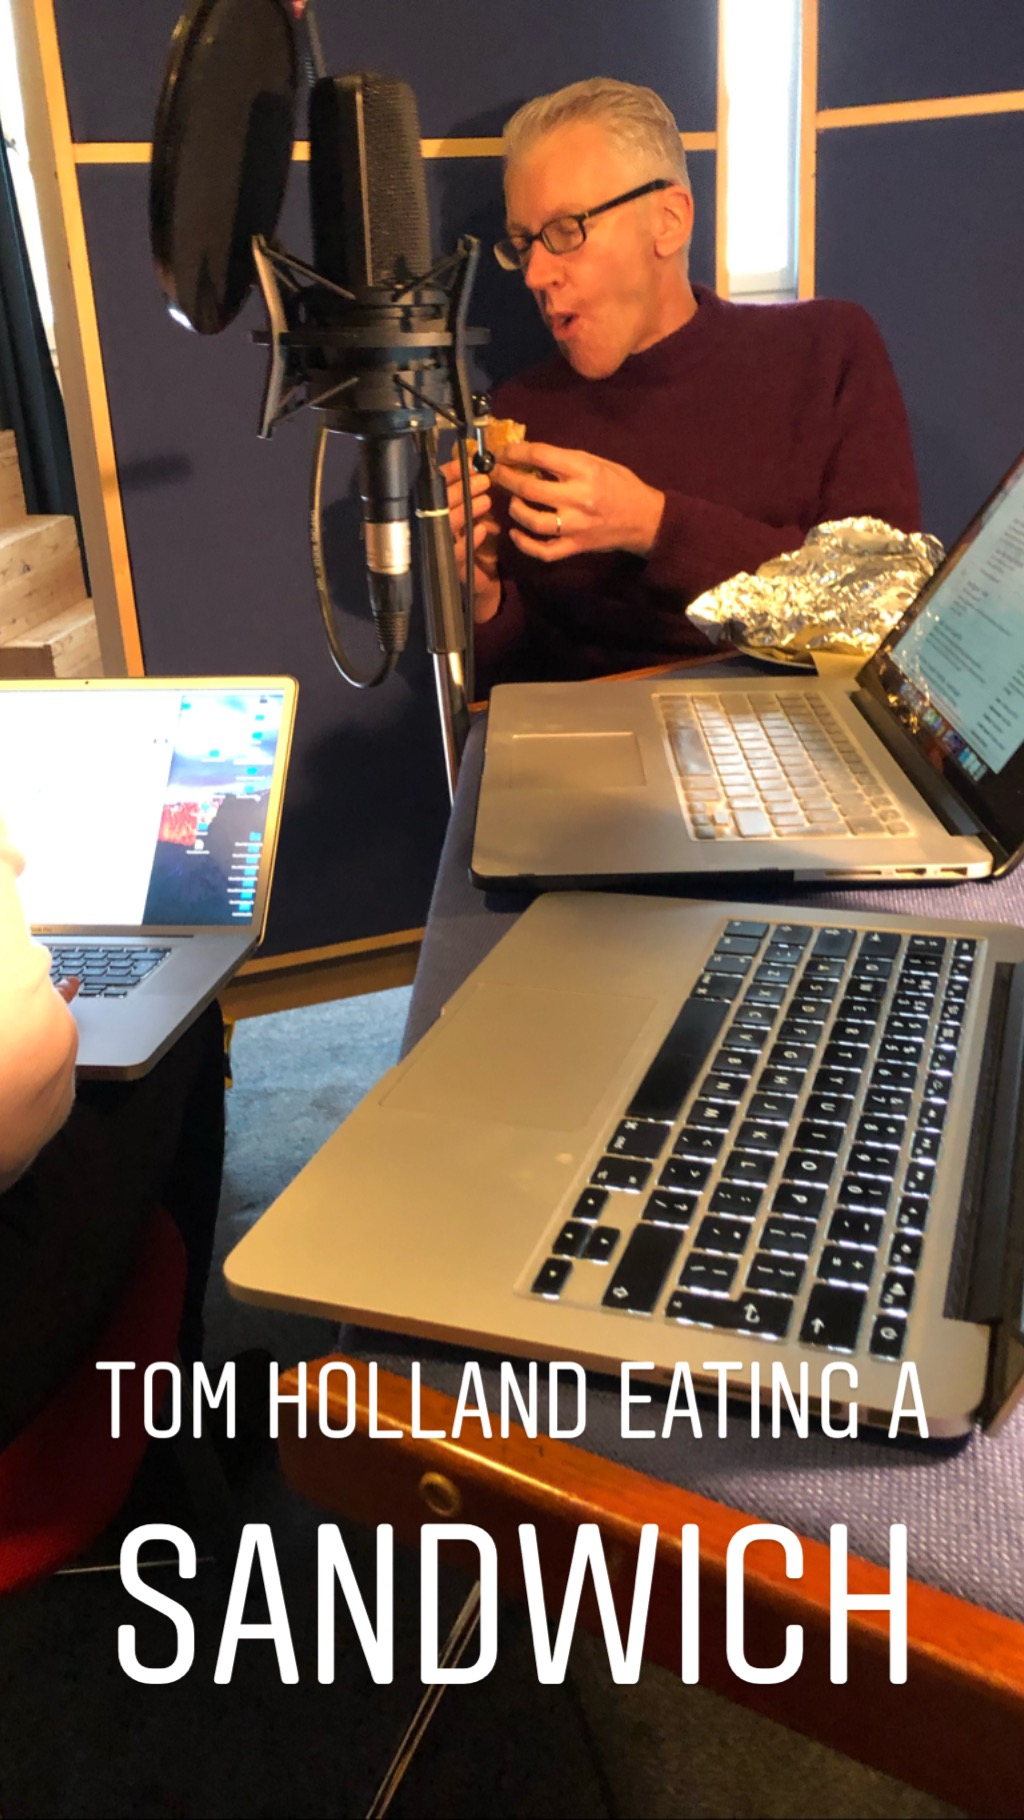 Tom Holland eats a sandwich